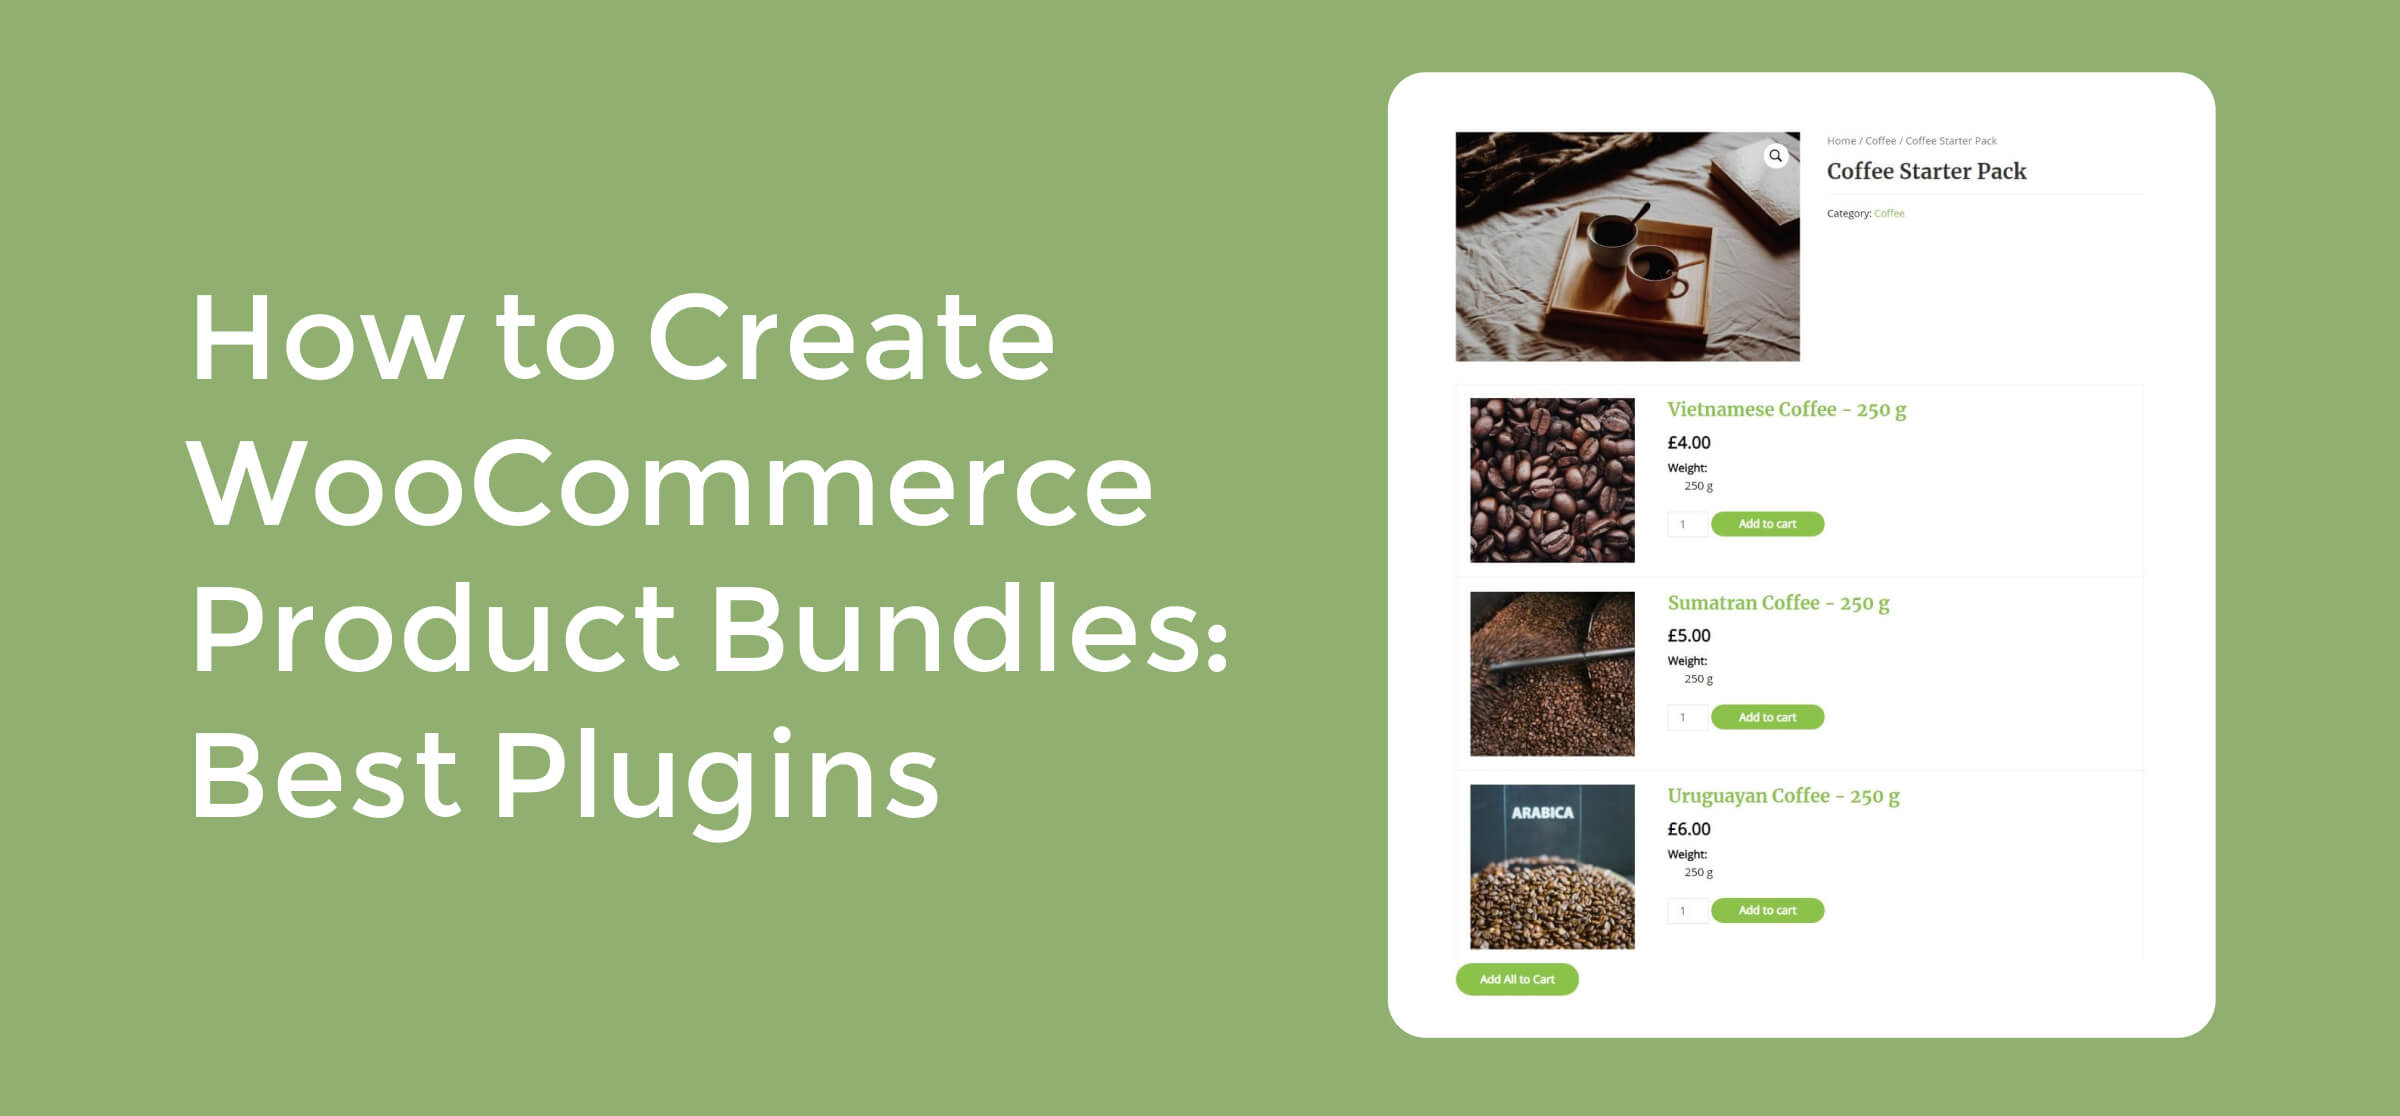 How to Create WooCommerce Product Bundles: Best Plugins